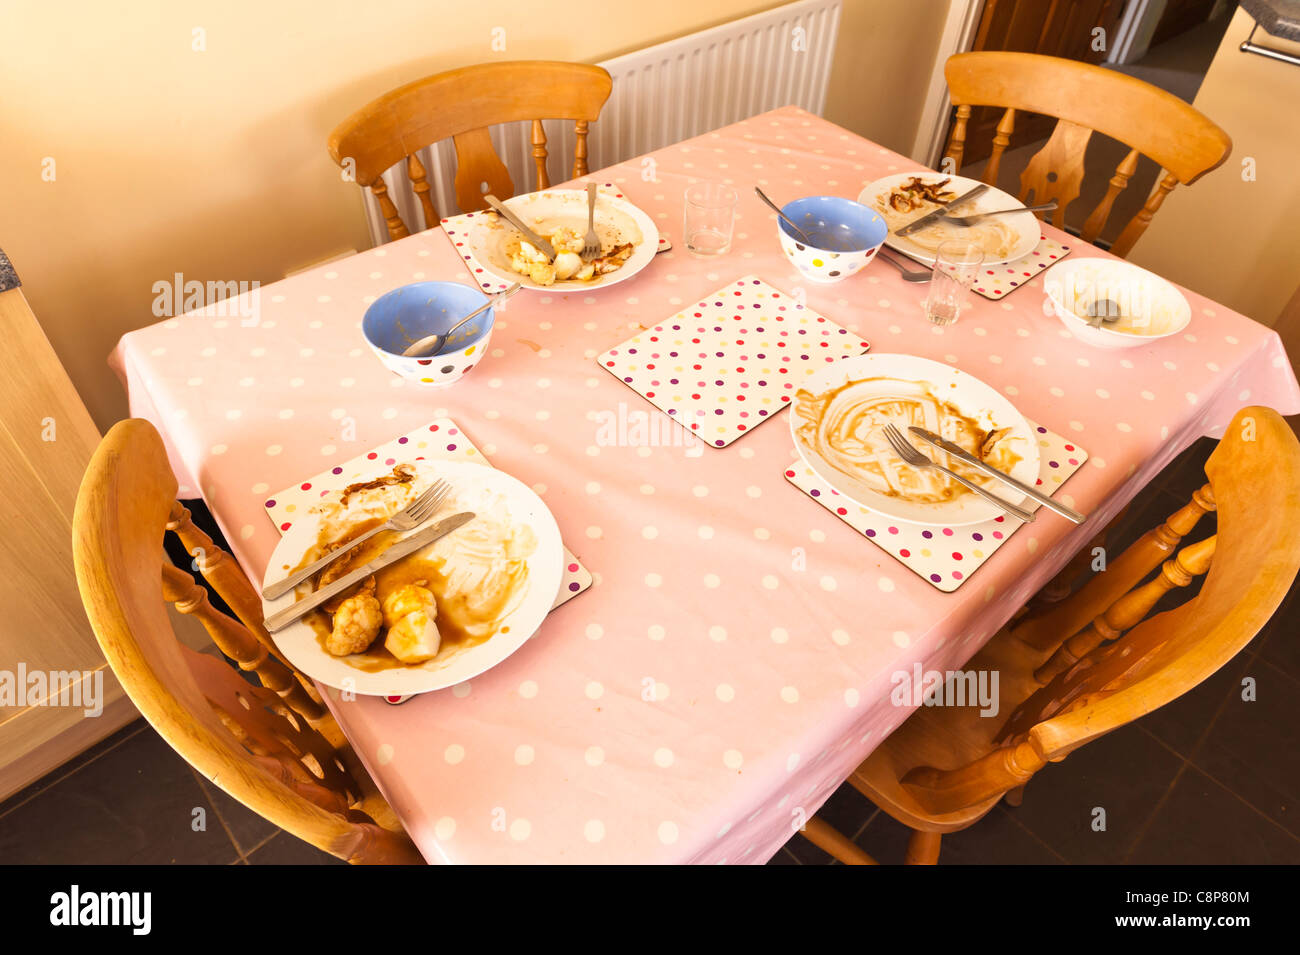 A family dinner table with dirty plates after a meal - Stock Image